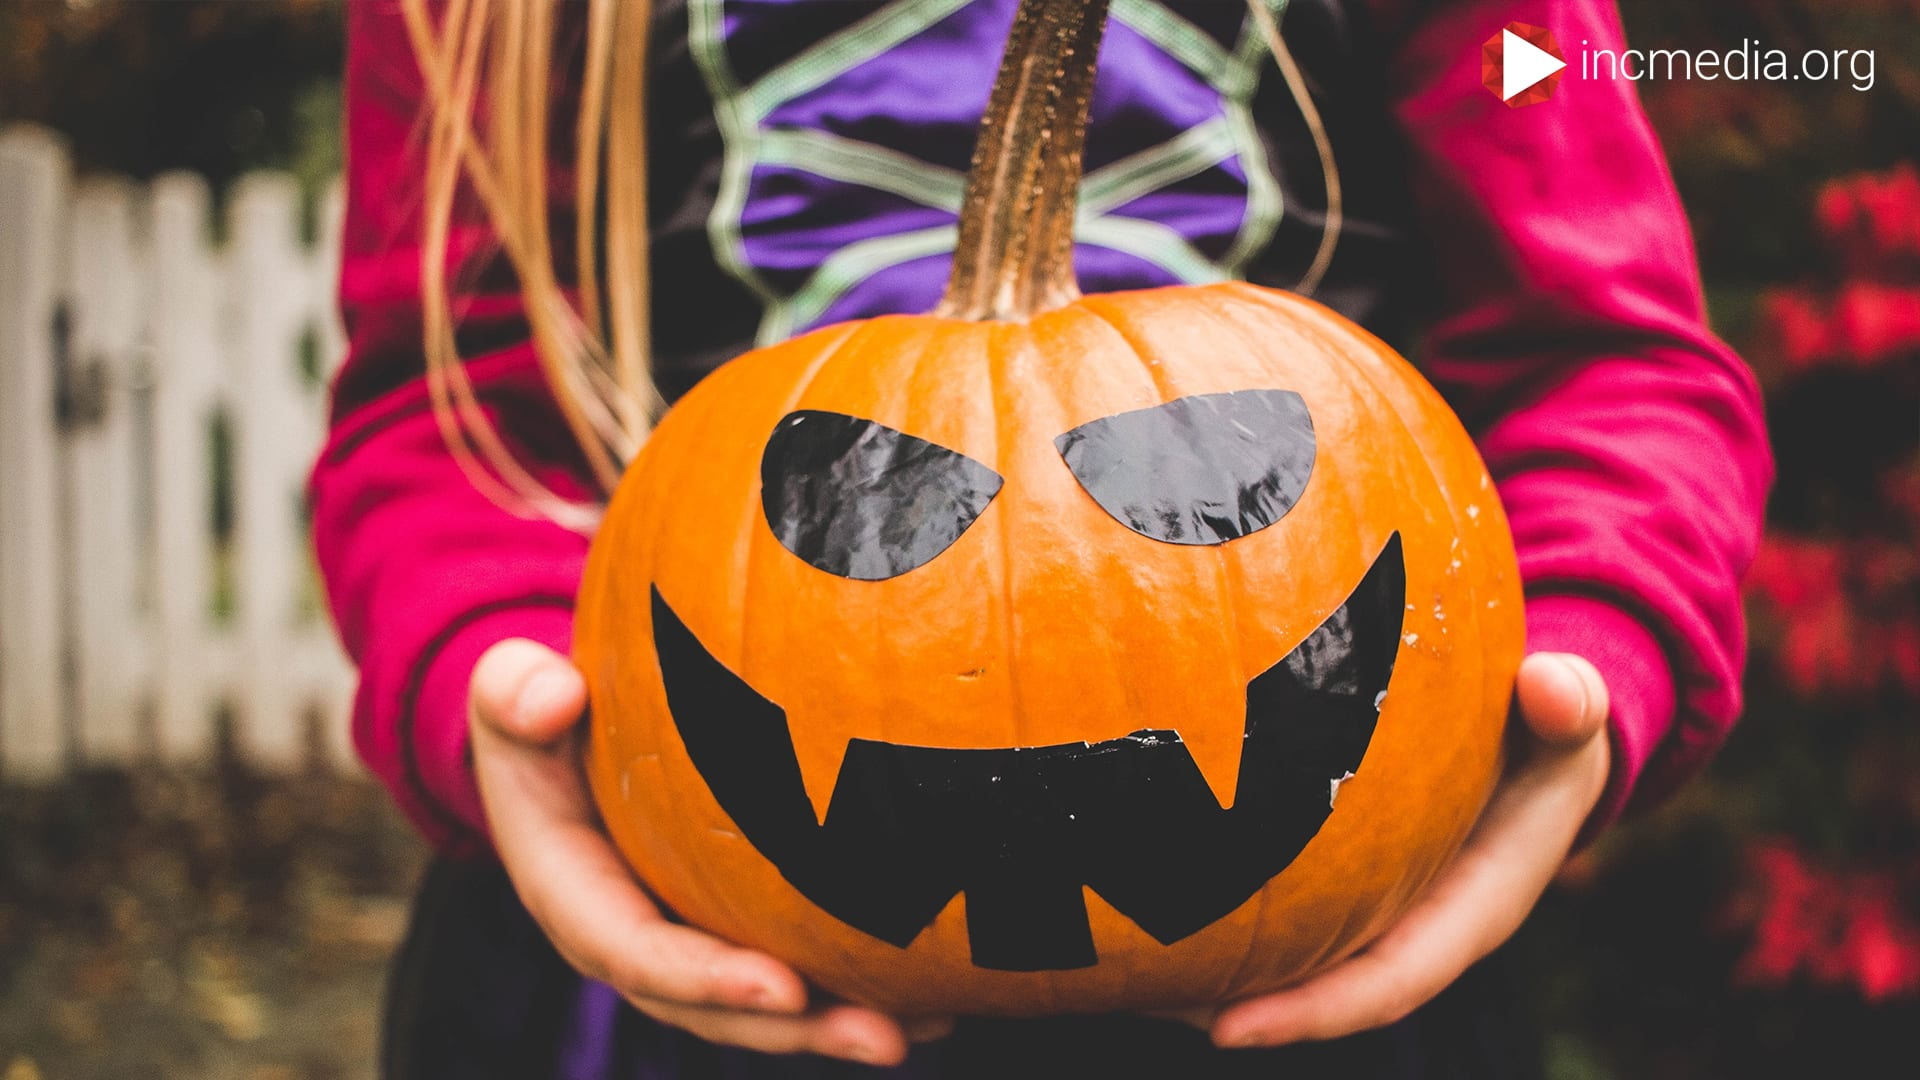 Someone holding a carved pumpkin ready to participate in Halloween.